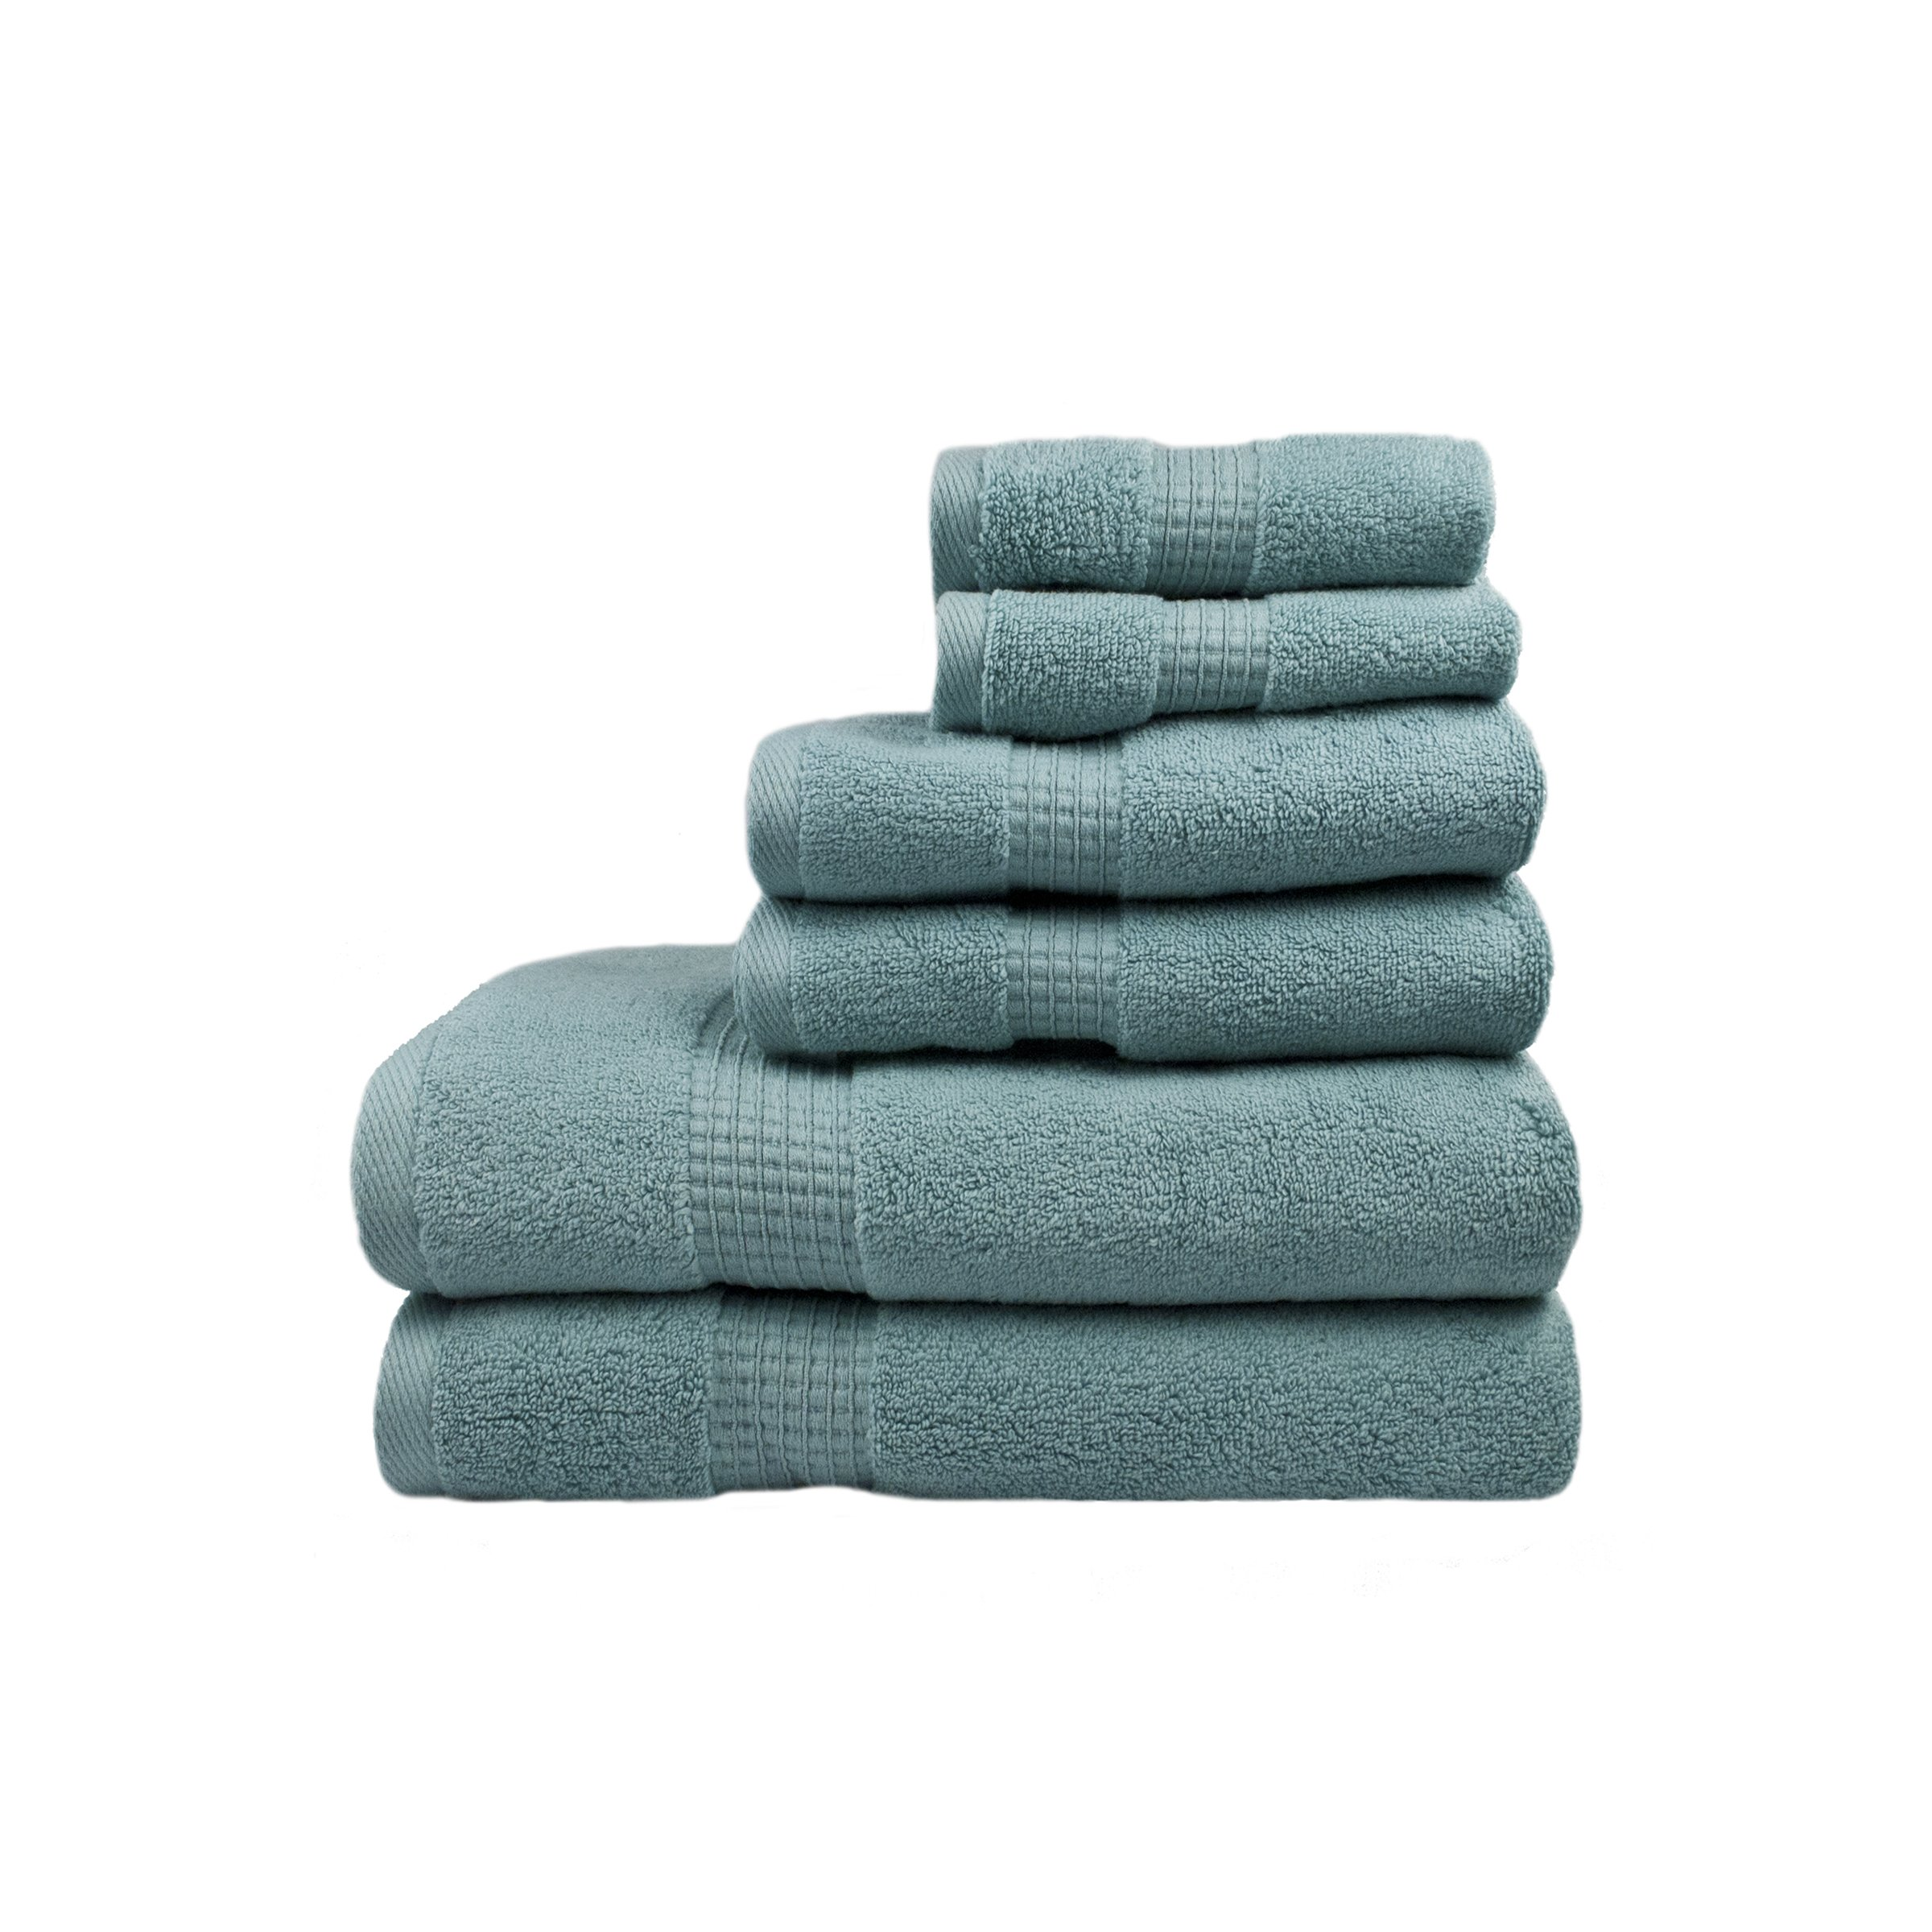 Ausin Horn Classics AHC00181-SEA Austin Horn Classics Zero Twist 6Piece Bath Towel Set Seafoam Blue by Ausin Horn Classics